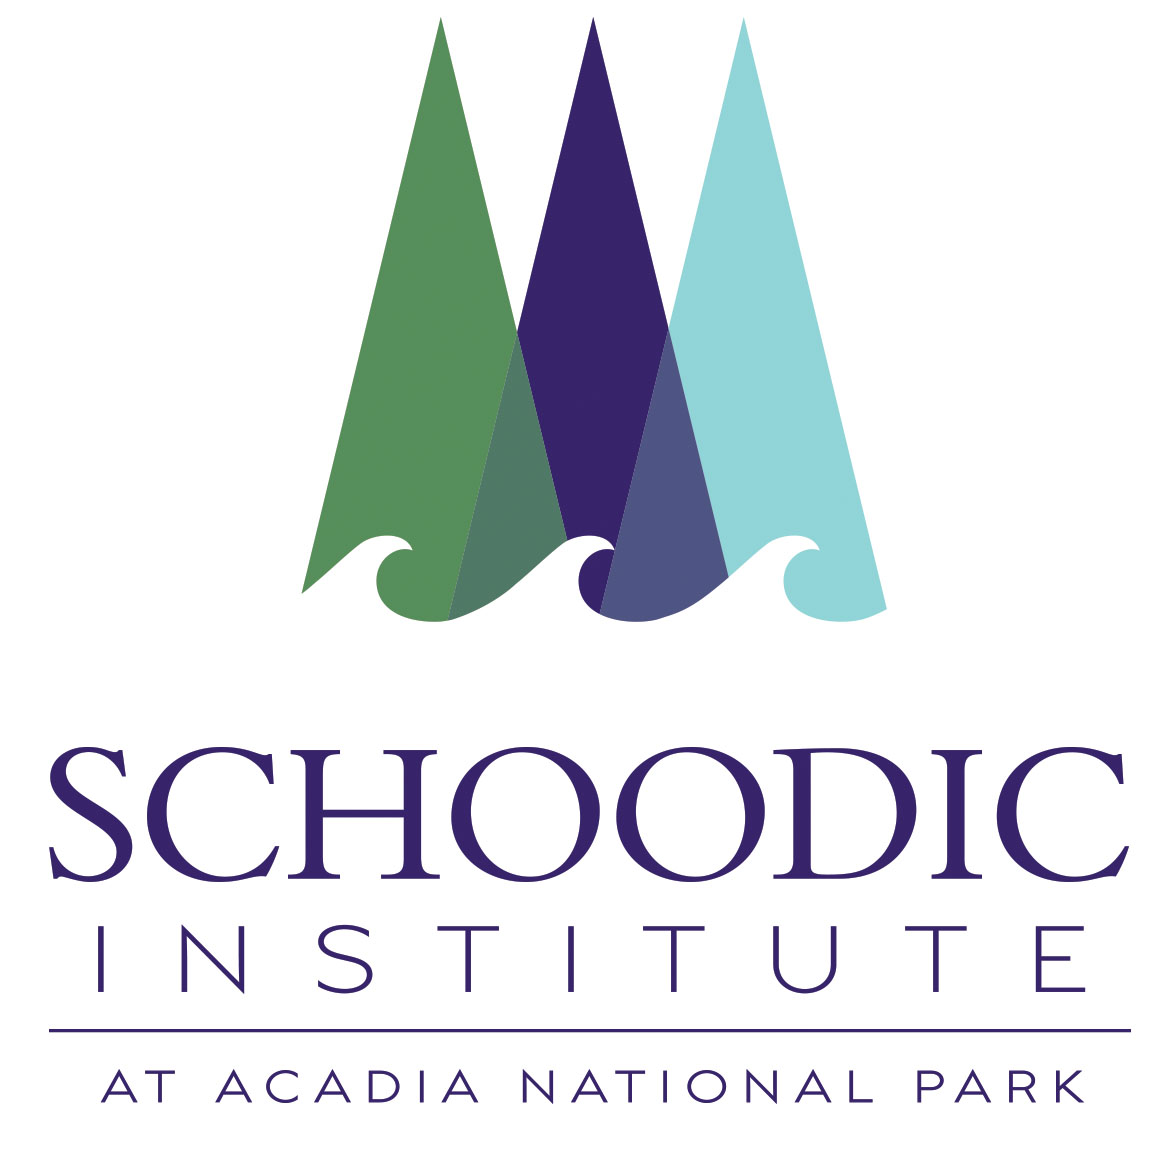 Schoodic Institute at Acadia National Park